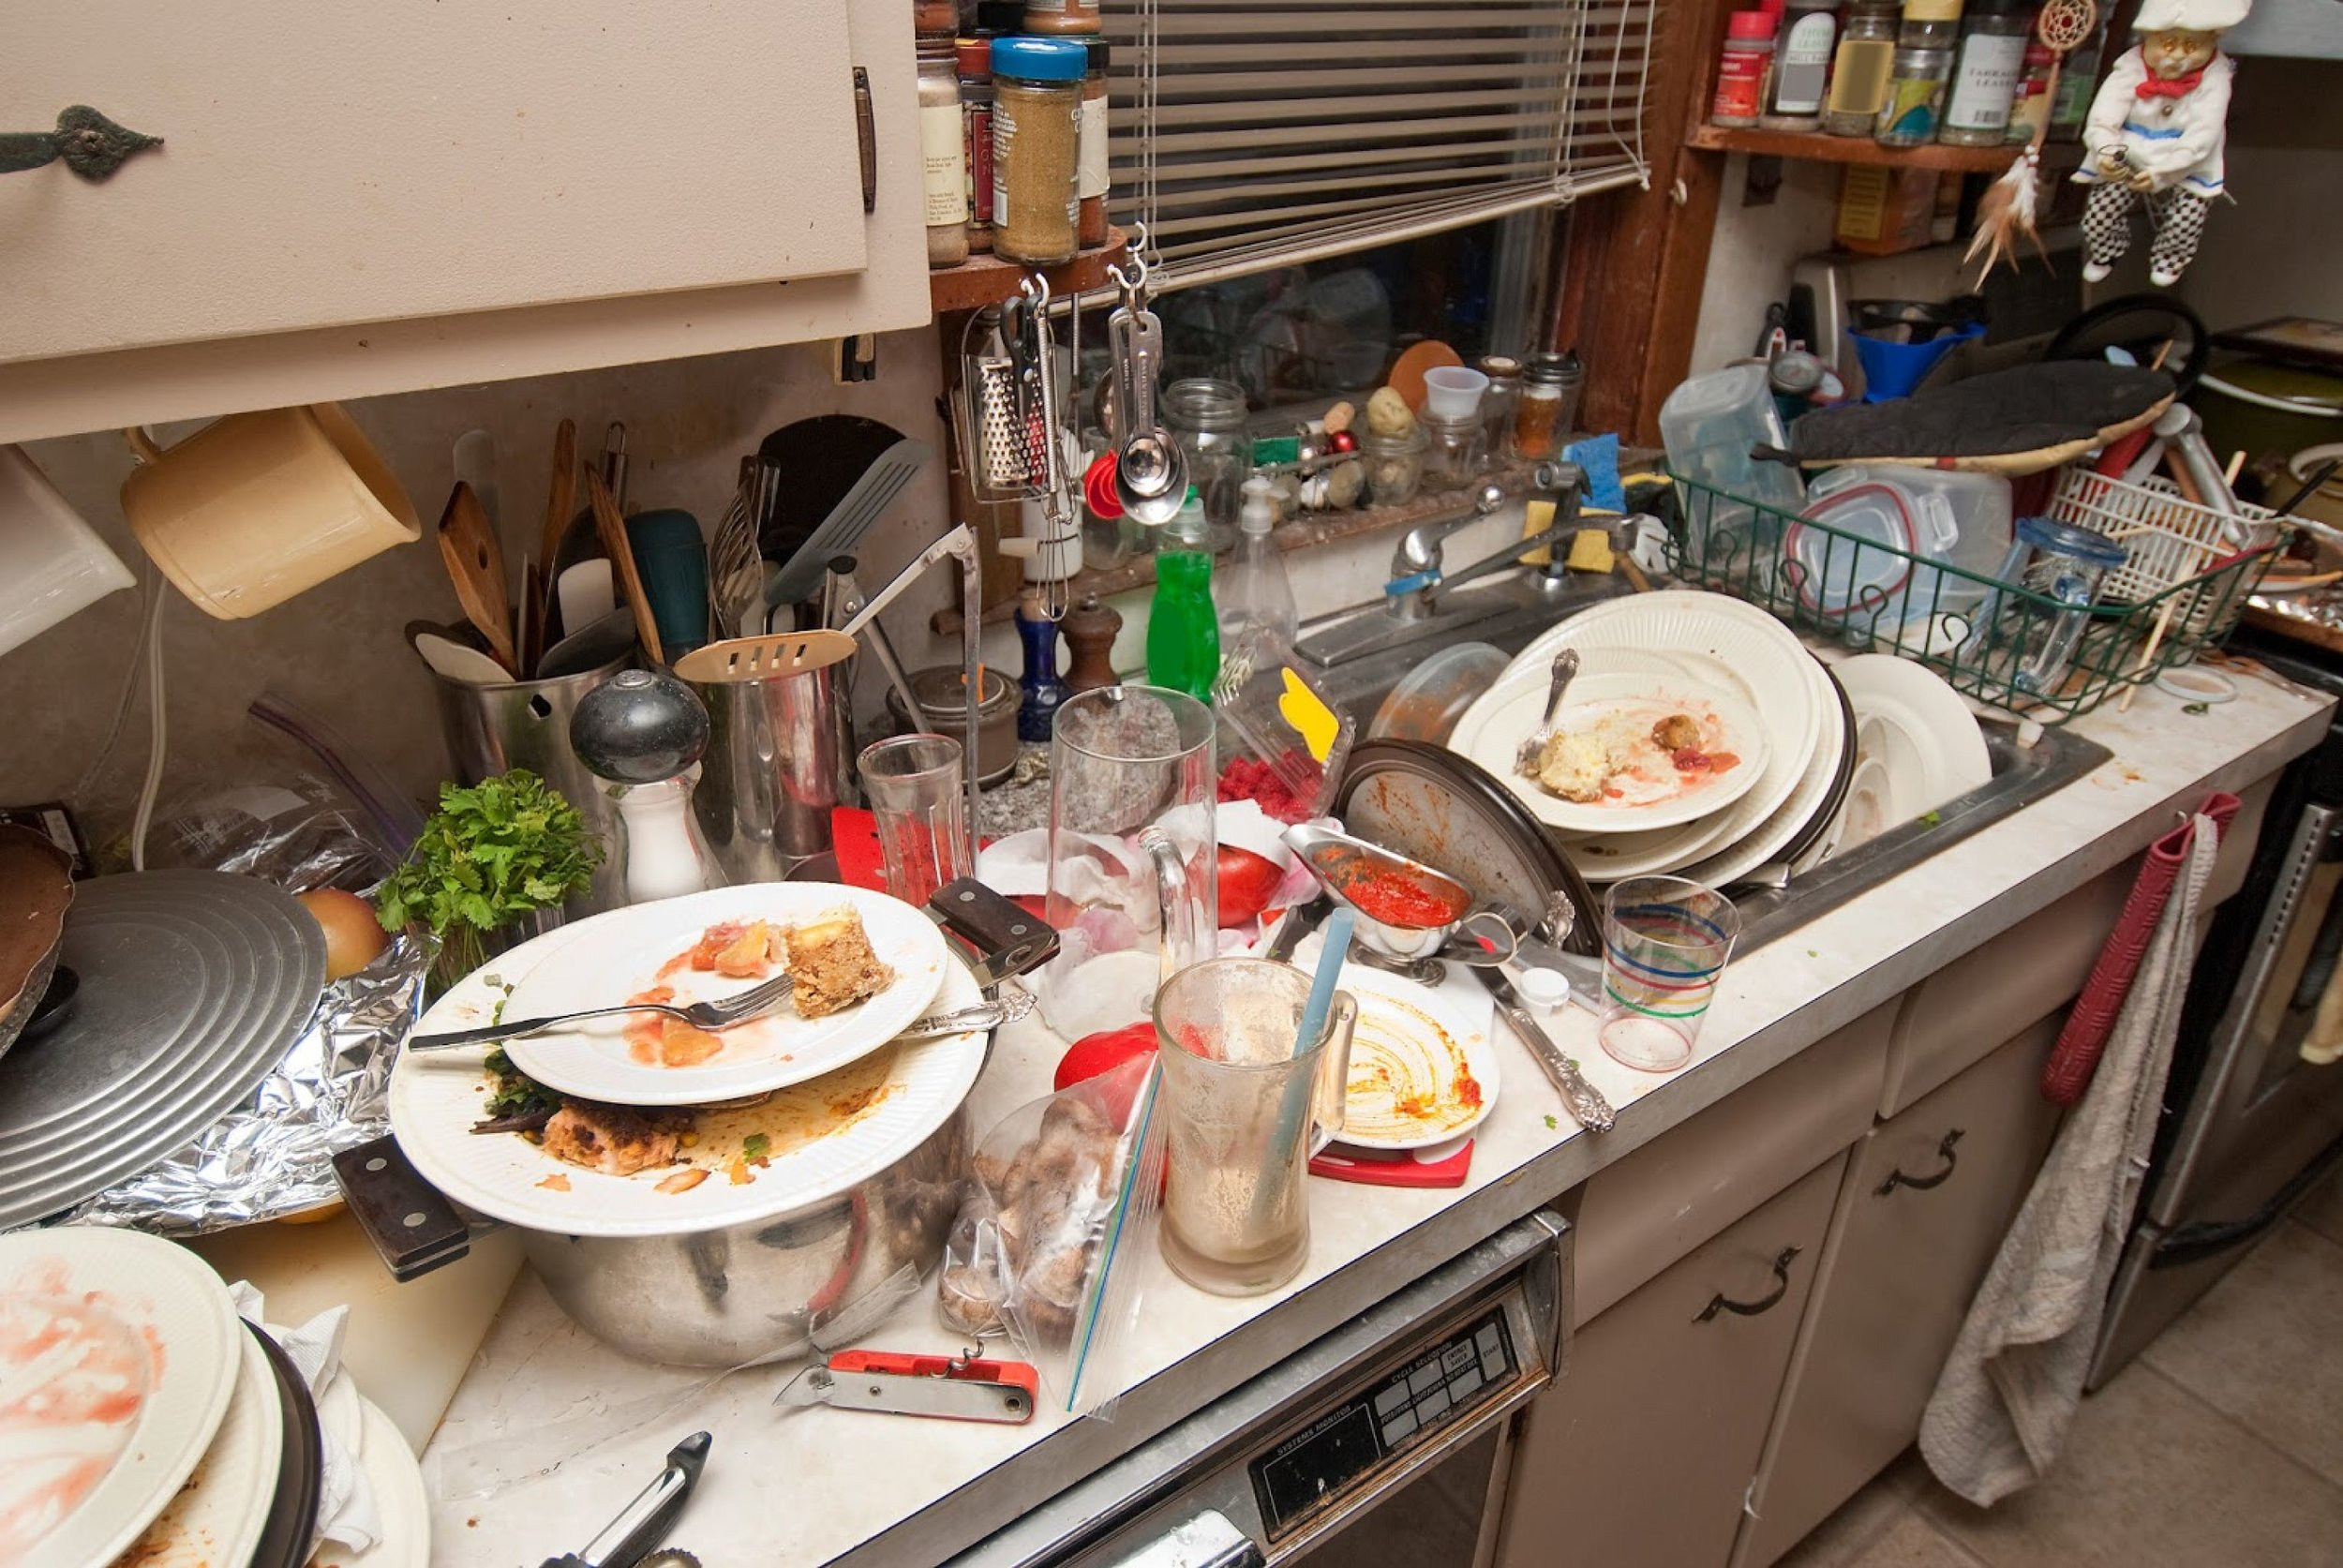 kitchen-dirty-internetunblock-us-bigstock-dishes-41021827-281-29-collector-care-s-blog-4-5-tips-on-keeping-your-1600x1071-0.jpg